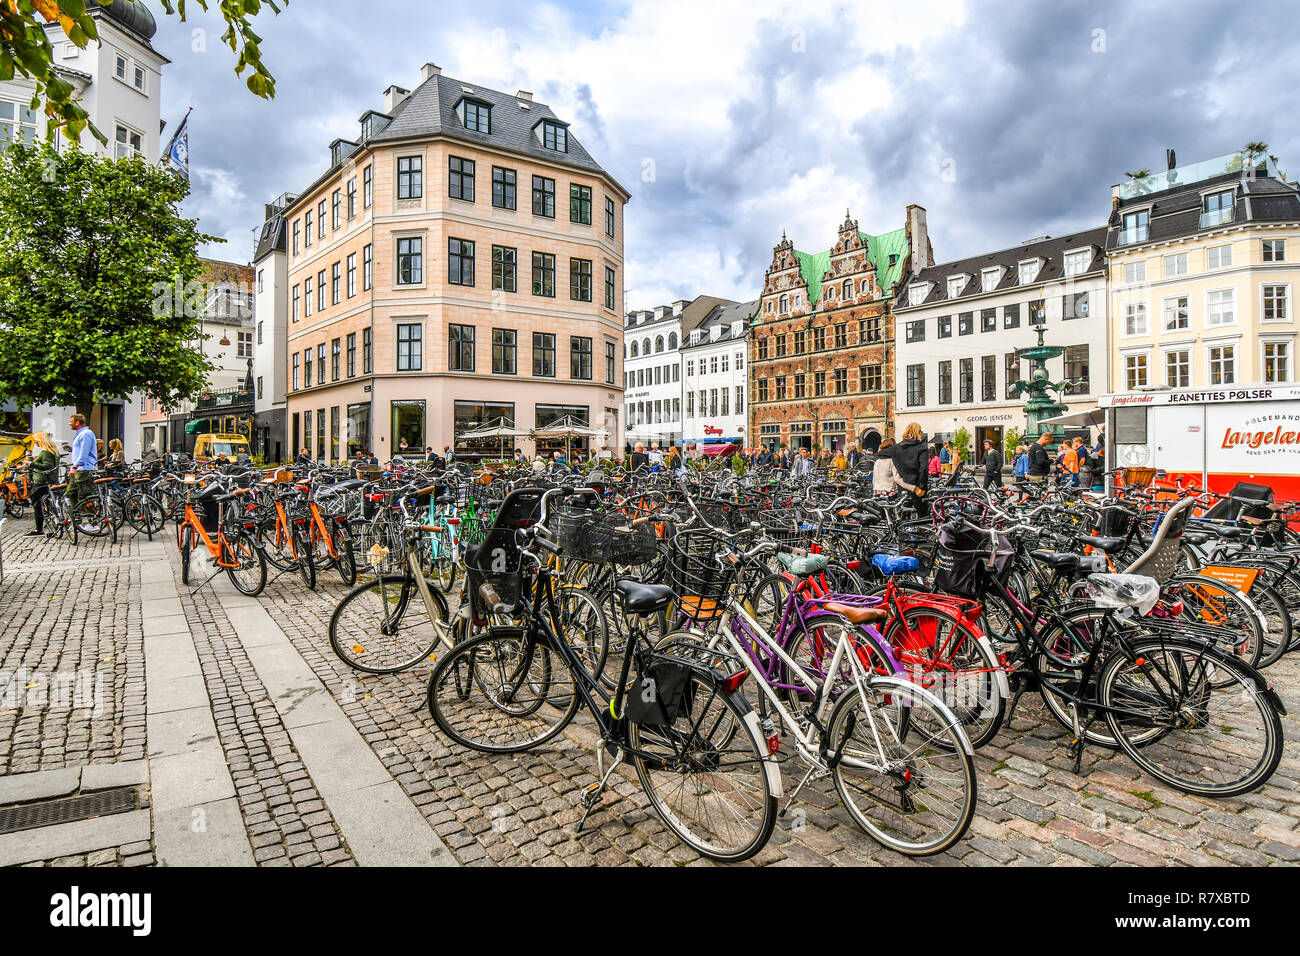 Bicycles parked alongside the Stork Fountain in the Stroget shopping district, the longest pedestrian street in the world, in Copenhagen, Denmark. - Stock Image